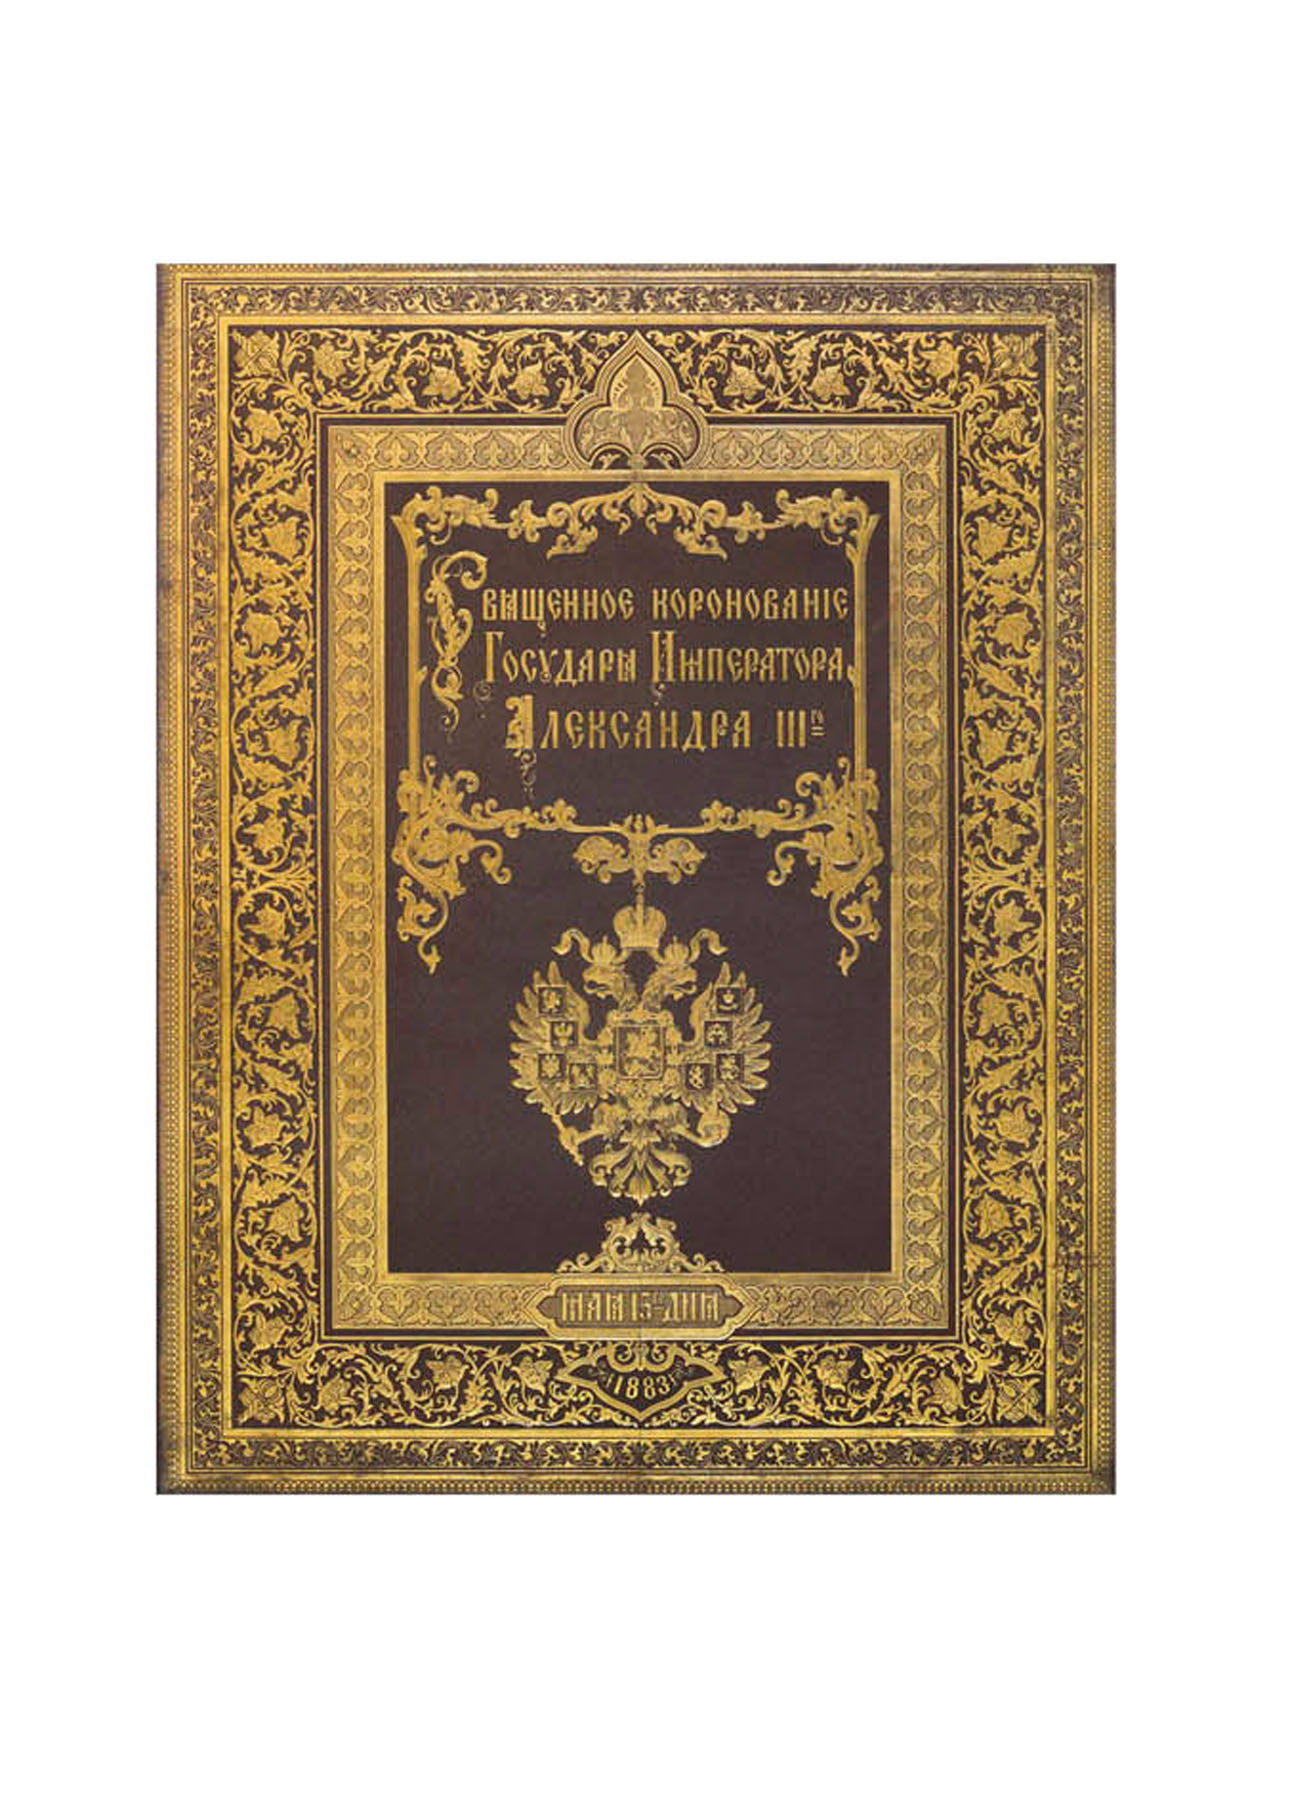 ALEXANDER III, Emperor of Russia -- Opisanie Sviashchennago Koronovaniia Ikh Imperatorskikh Velichestv Gosudaria Imperatora Aleksandra Tret'iago i Gosudaryni Imperatritsy Marii Feodorovny vseia Rossii. [Description of the Coronation of their Imperial Majesties the Emperor of all the Russias Alexandre III and Empress Maria Feodorovna in the year 1883.] St. Petersburg: Expedition for the Preparation of State Papers, 1883.